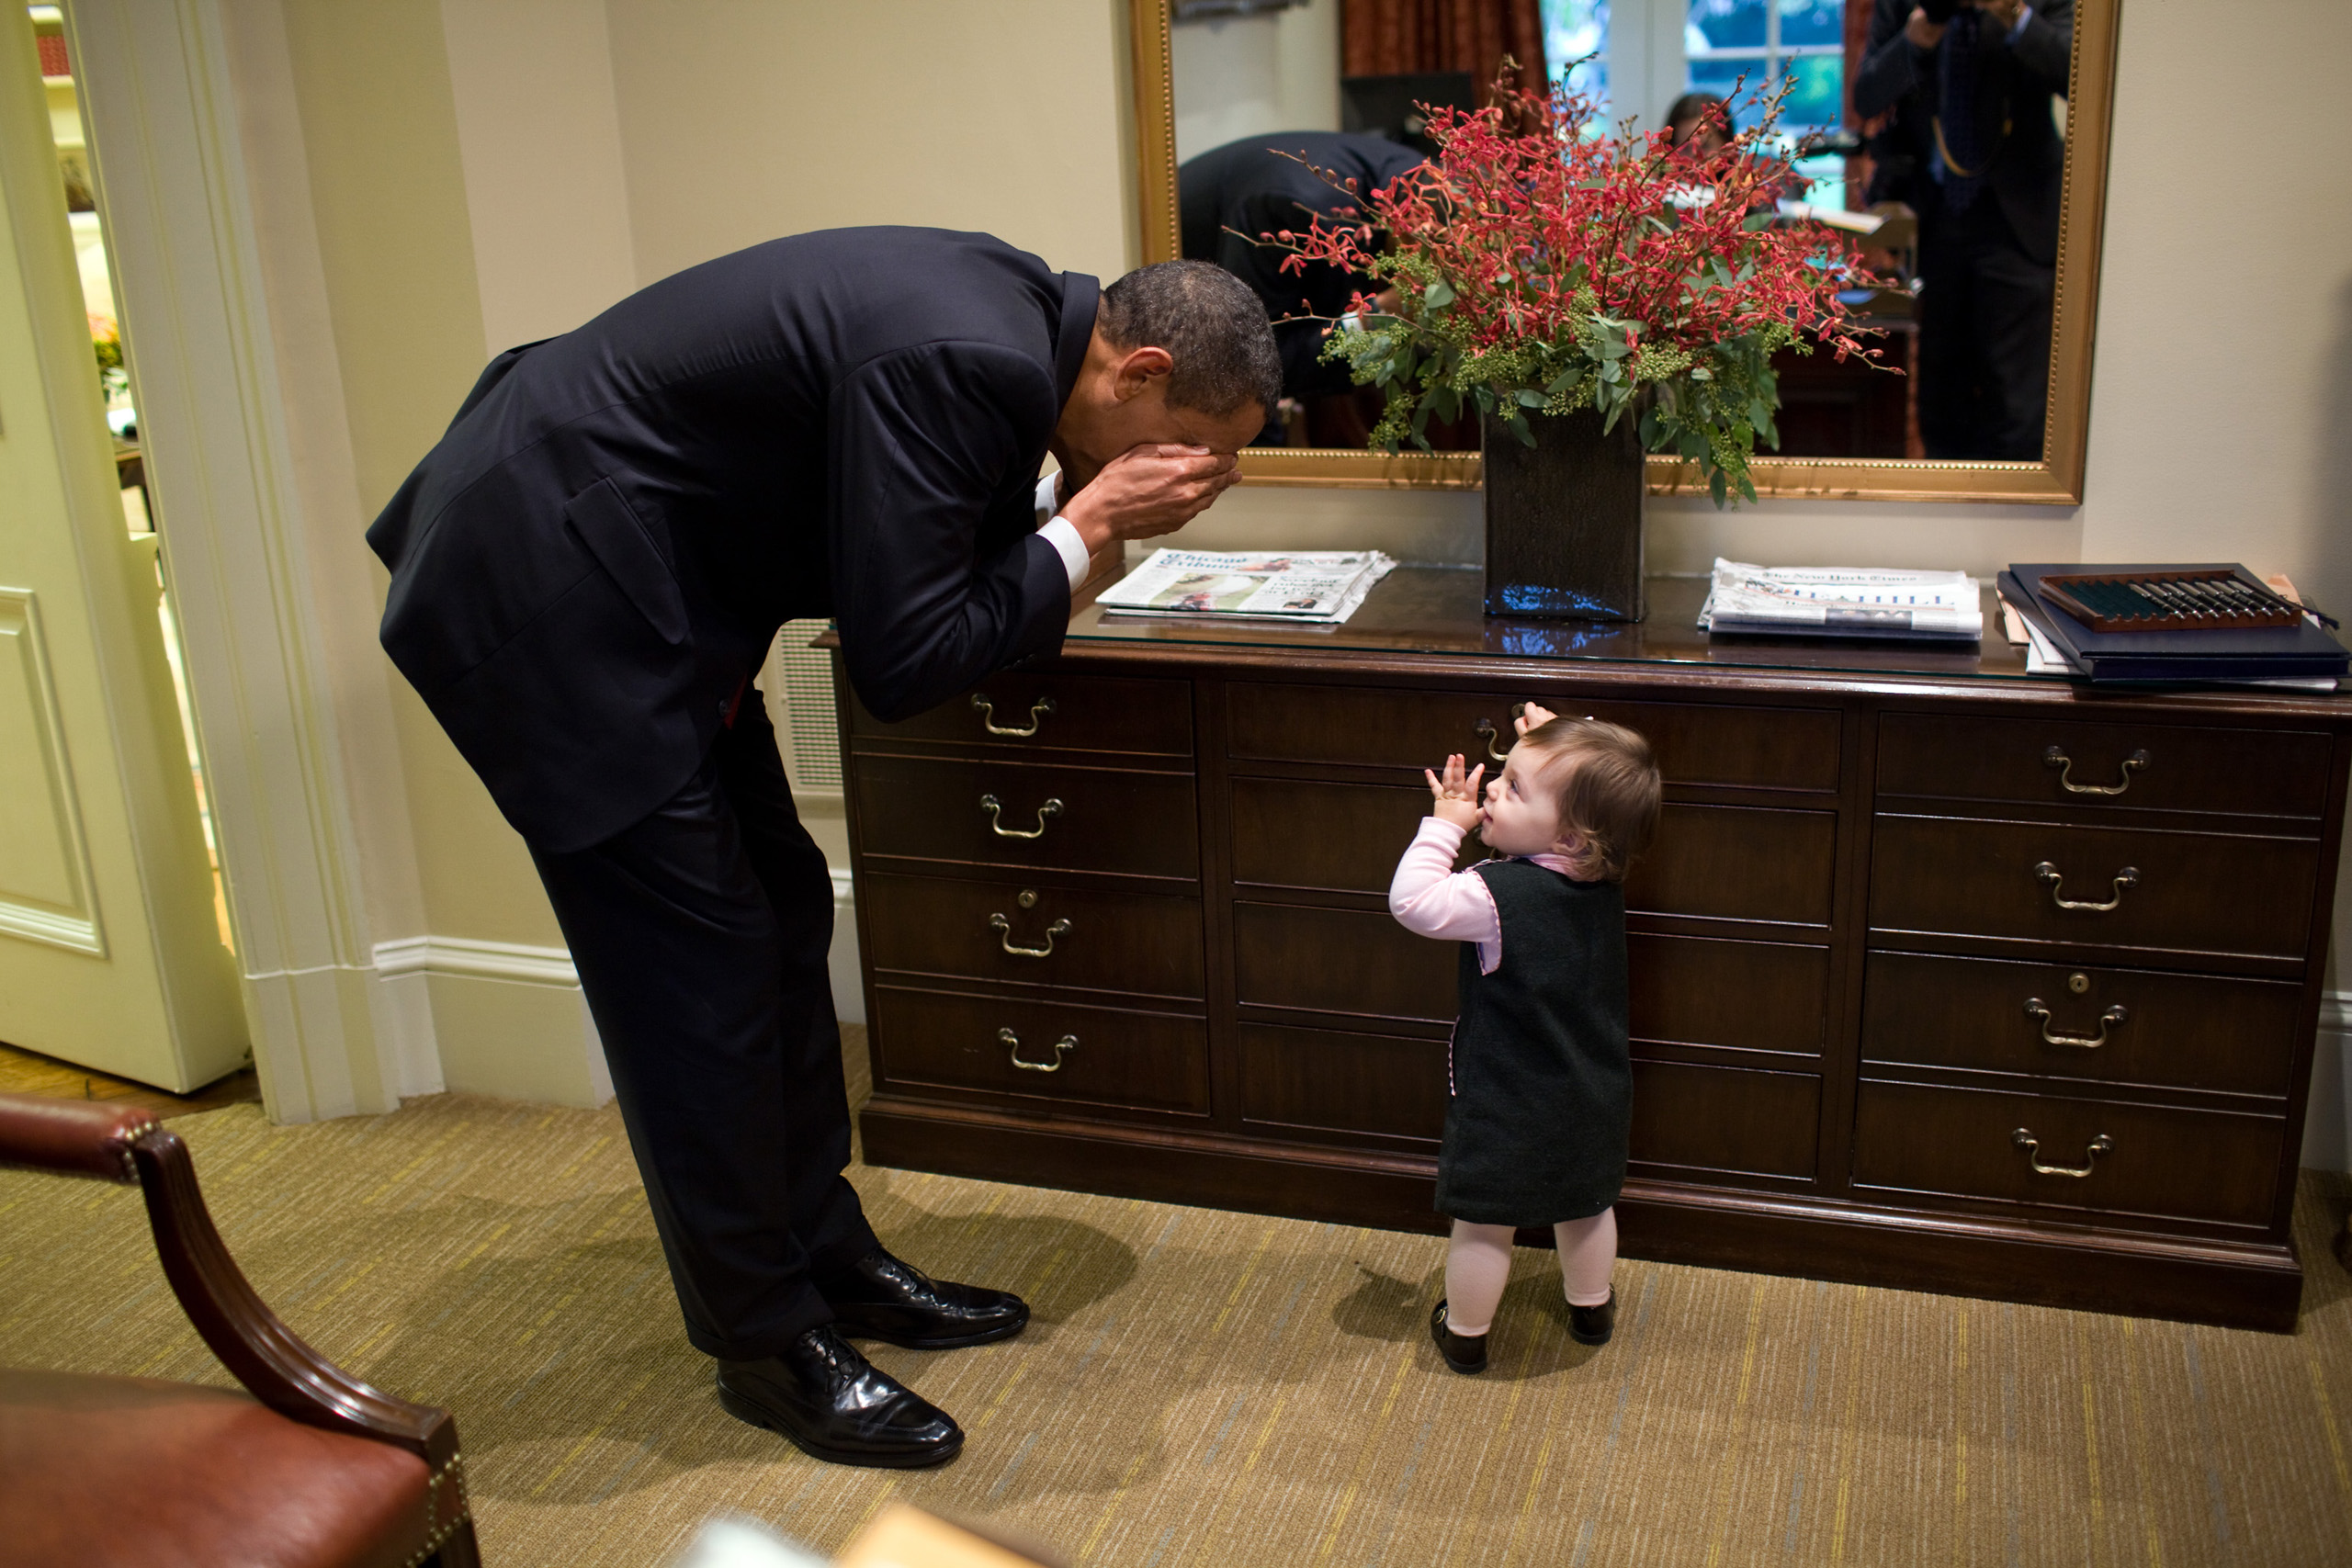 The President plays peek-a-boo with the daughter of White House staffer Emmitt Beliveau in the Outer Oval Office on Oct. 30, 2009.